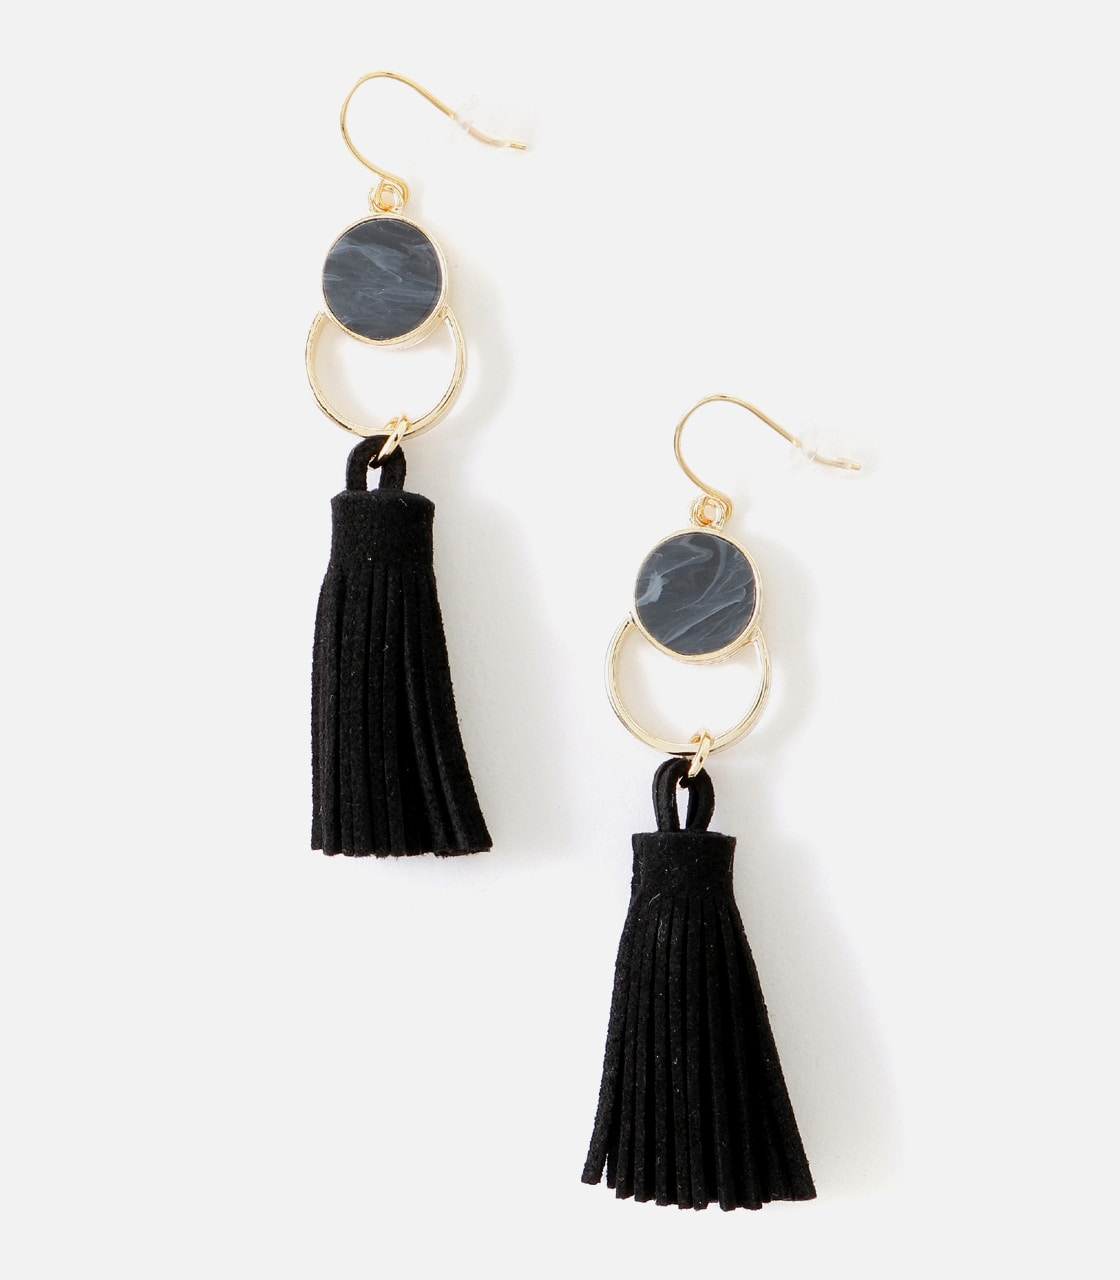 【AZUL BY MOUSSY】フェイクスエードタッセルフックピアス 詳細画像 BLK 1